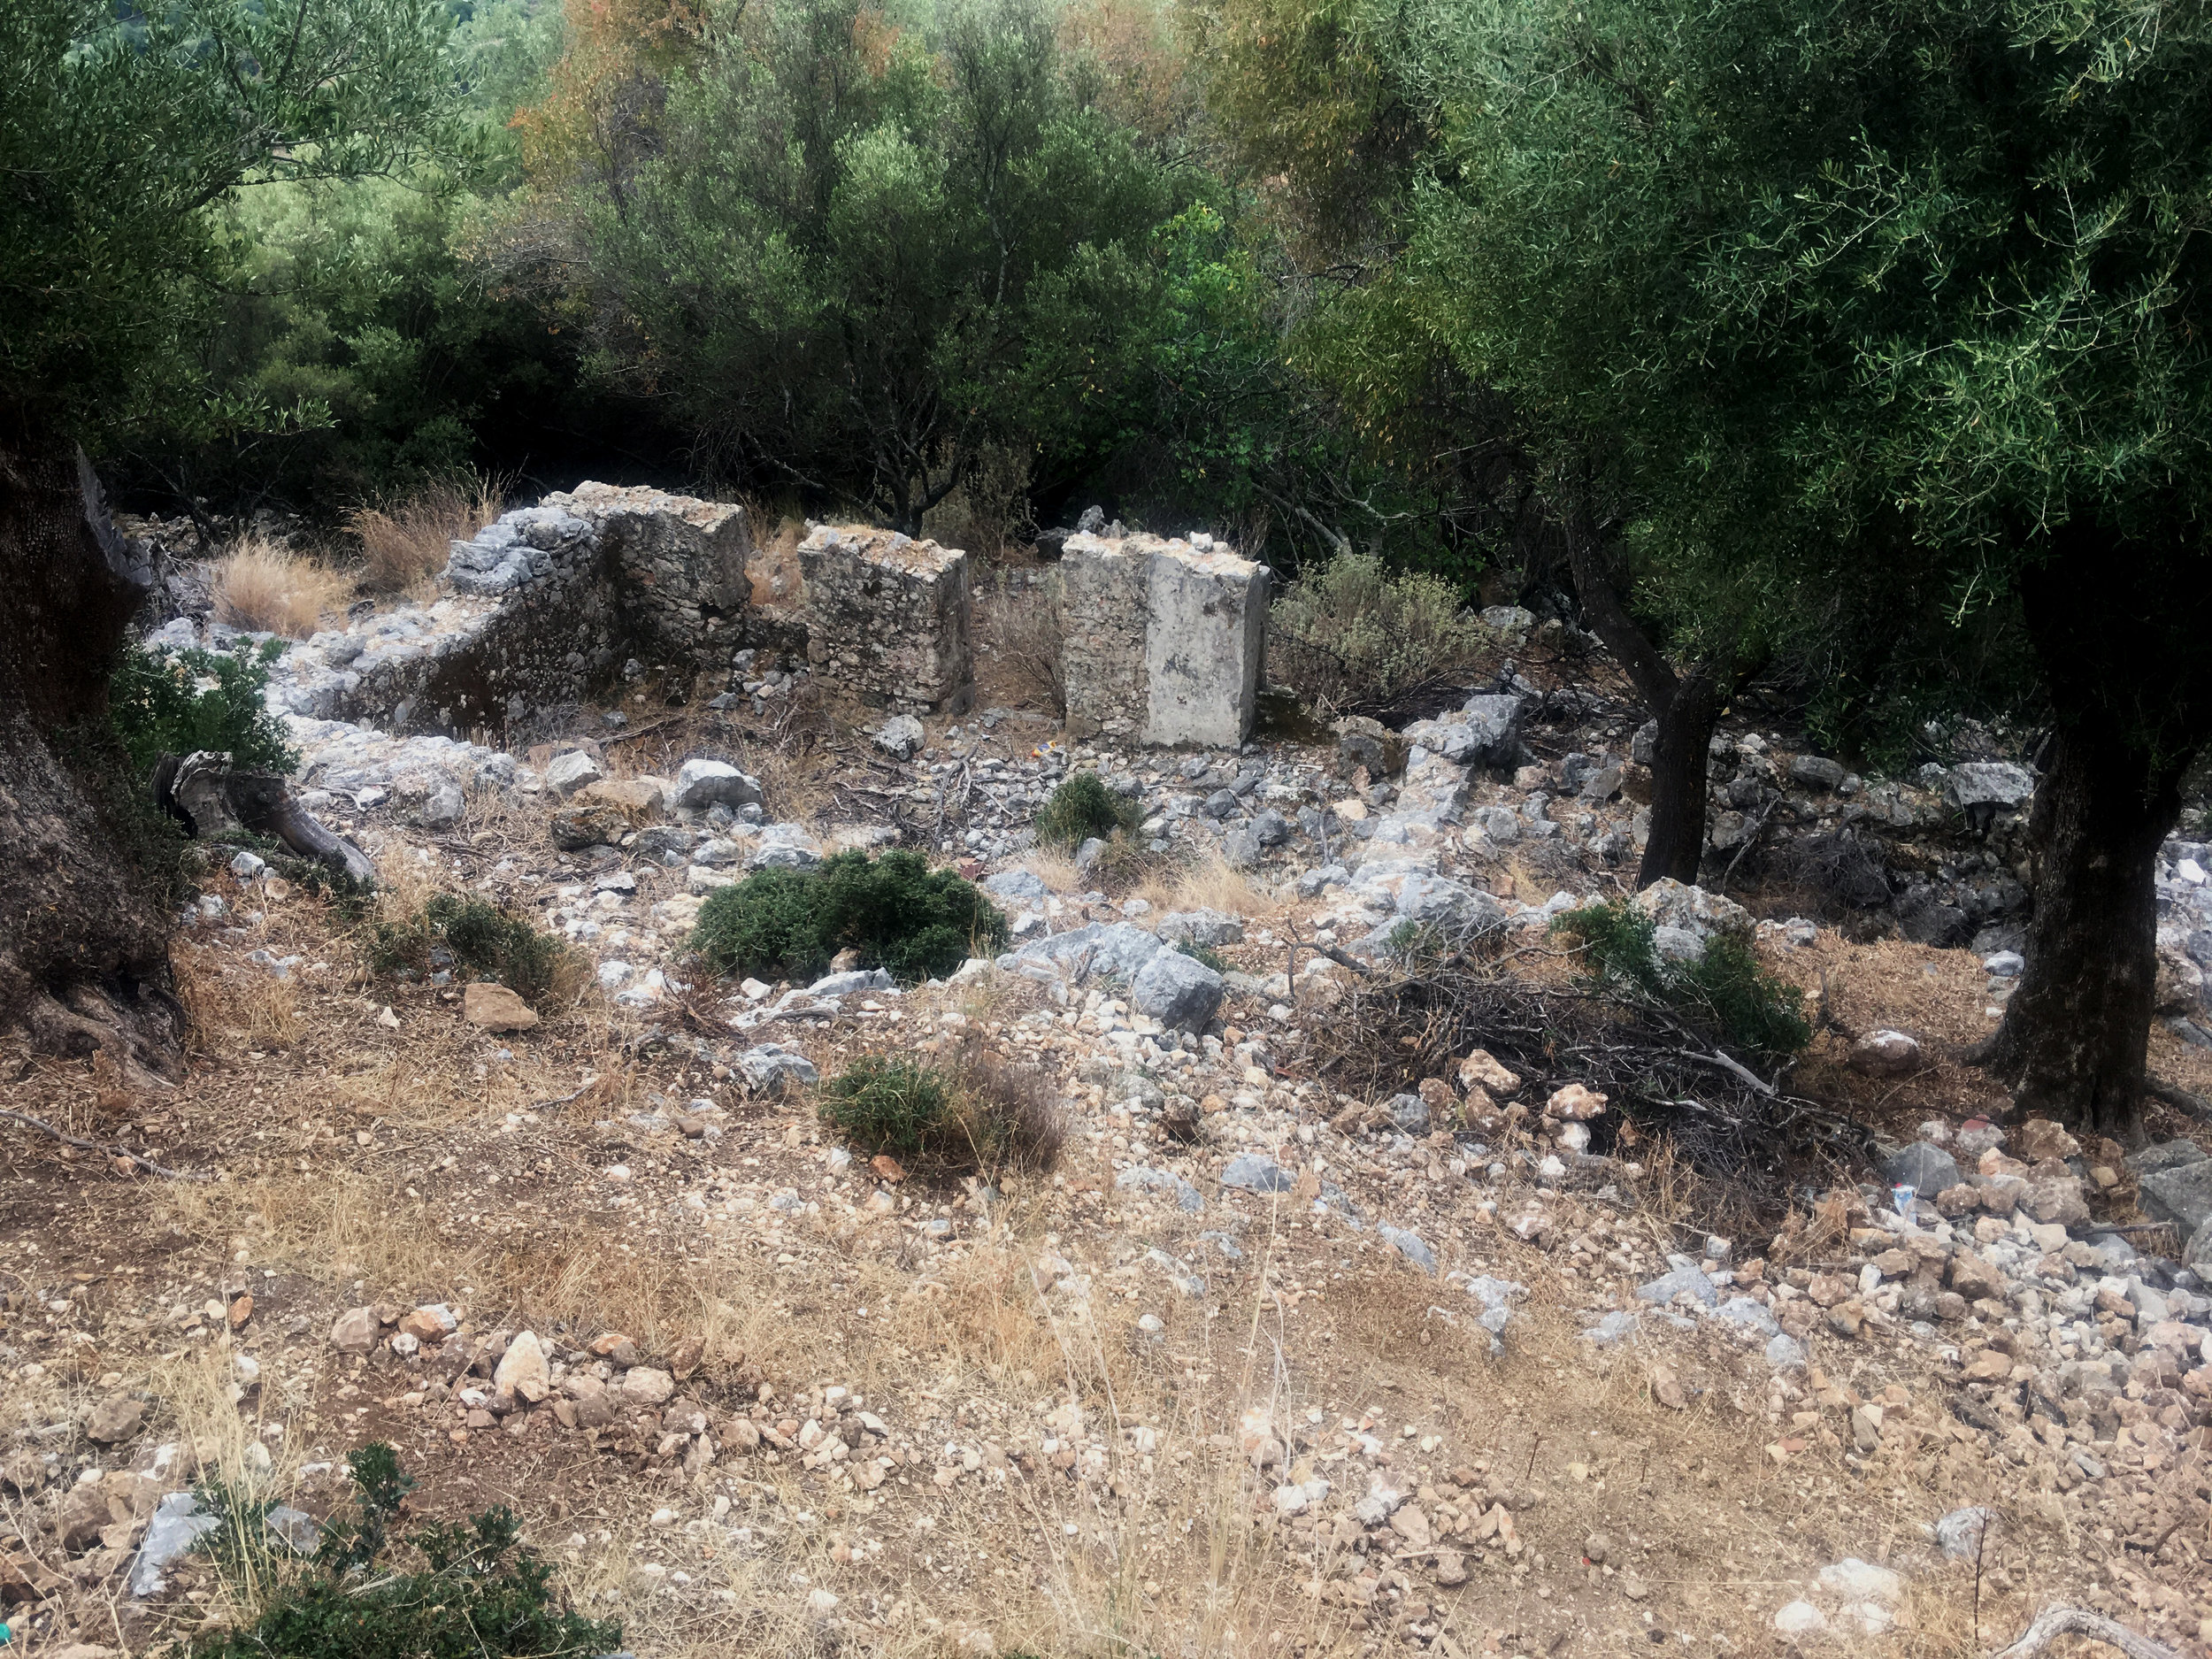 The ruins of Old Skala, which was leveled by a devasting earthquake in 1957 that claimed many lives and resulted in the move to the new town's present location.